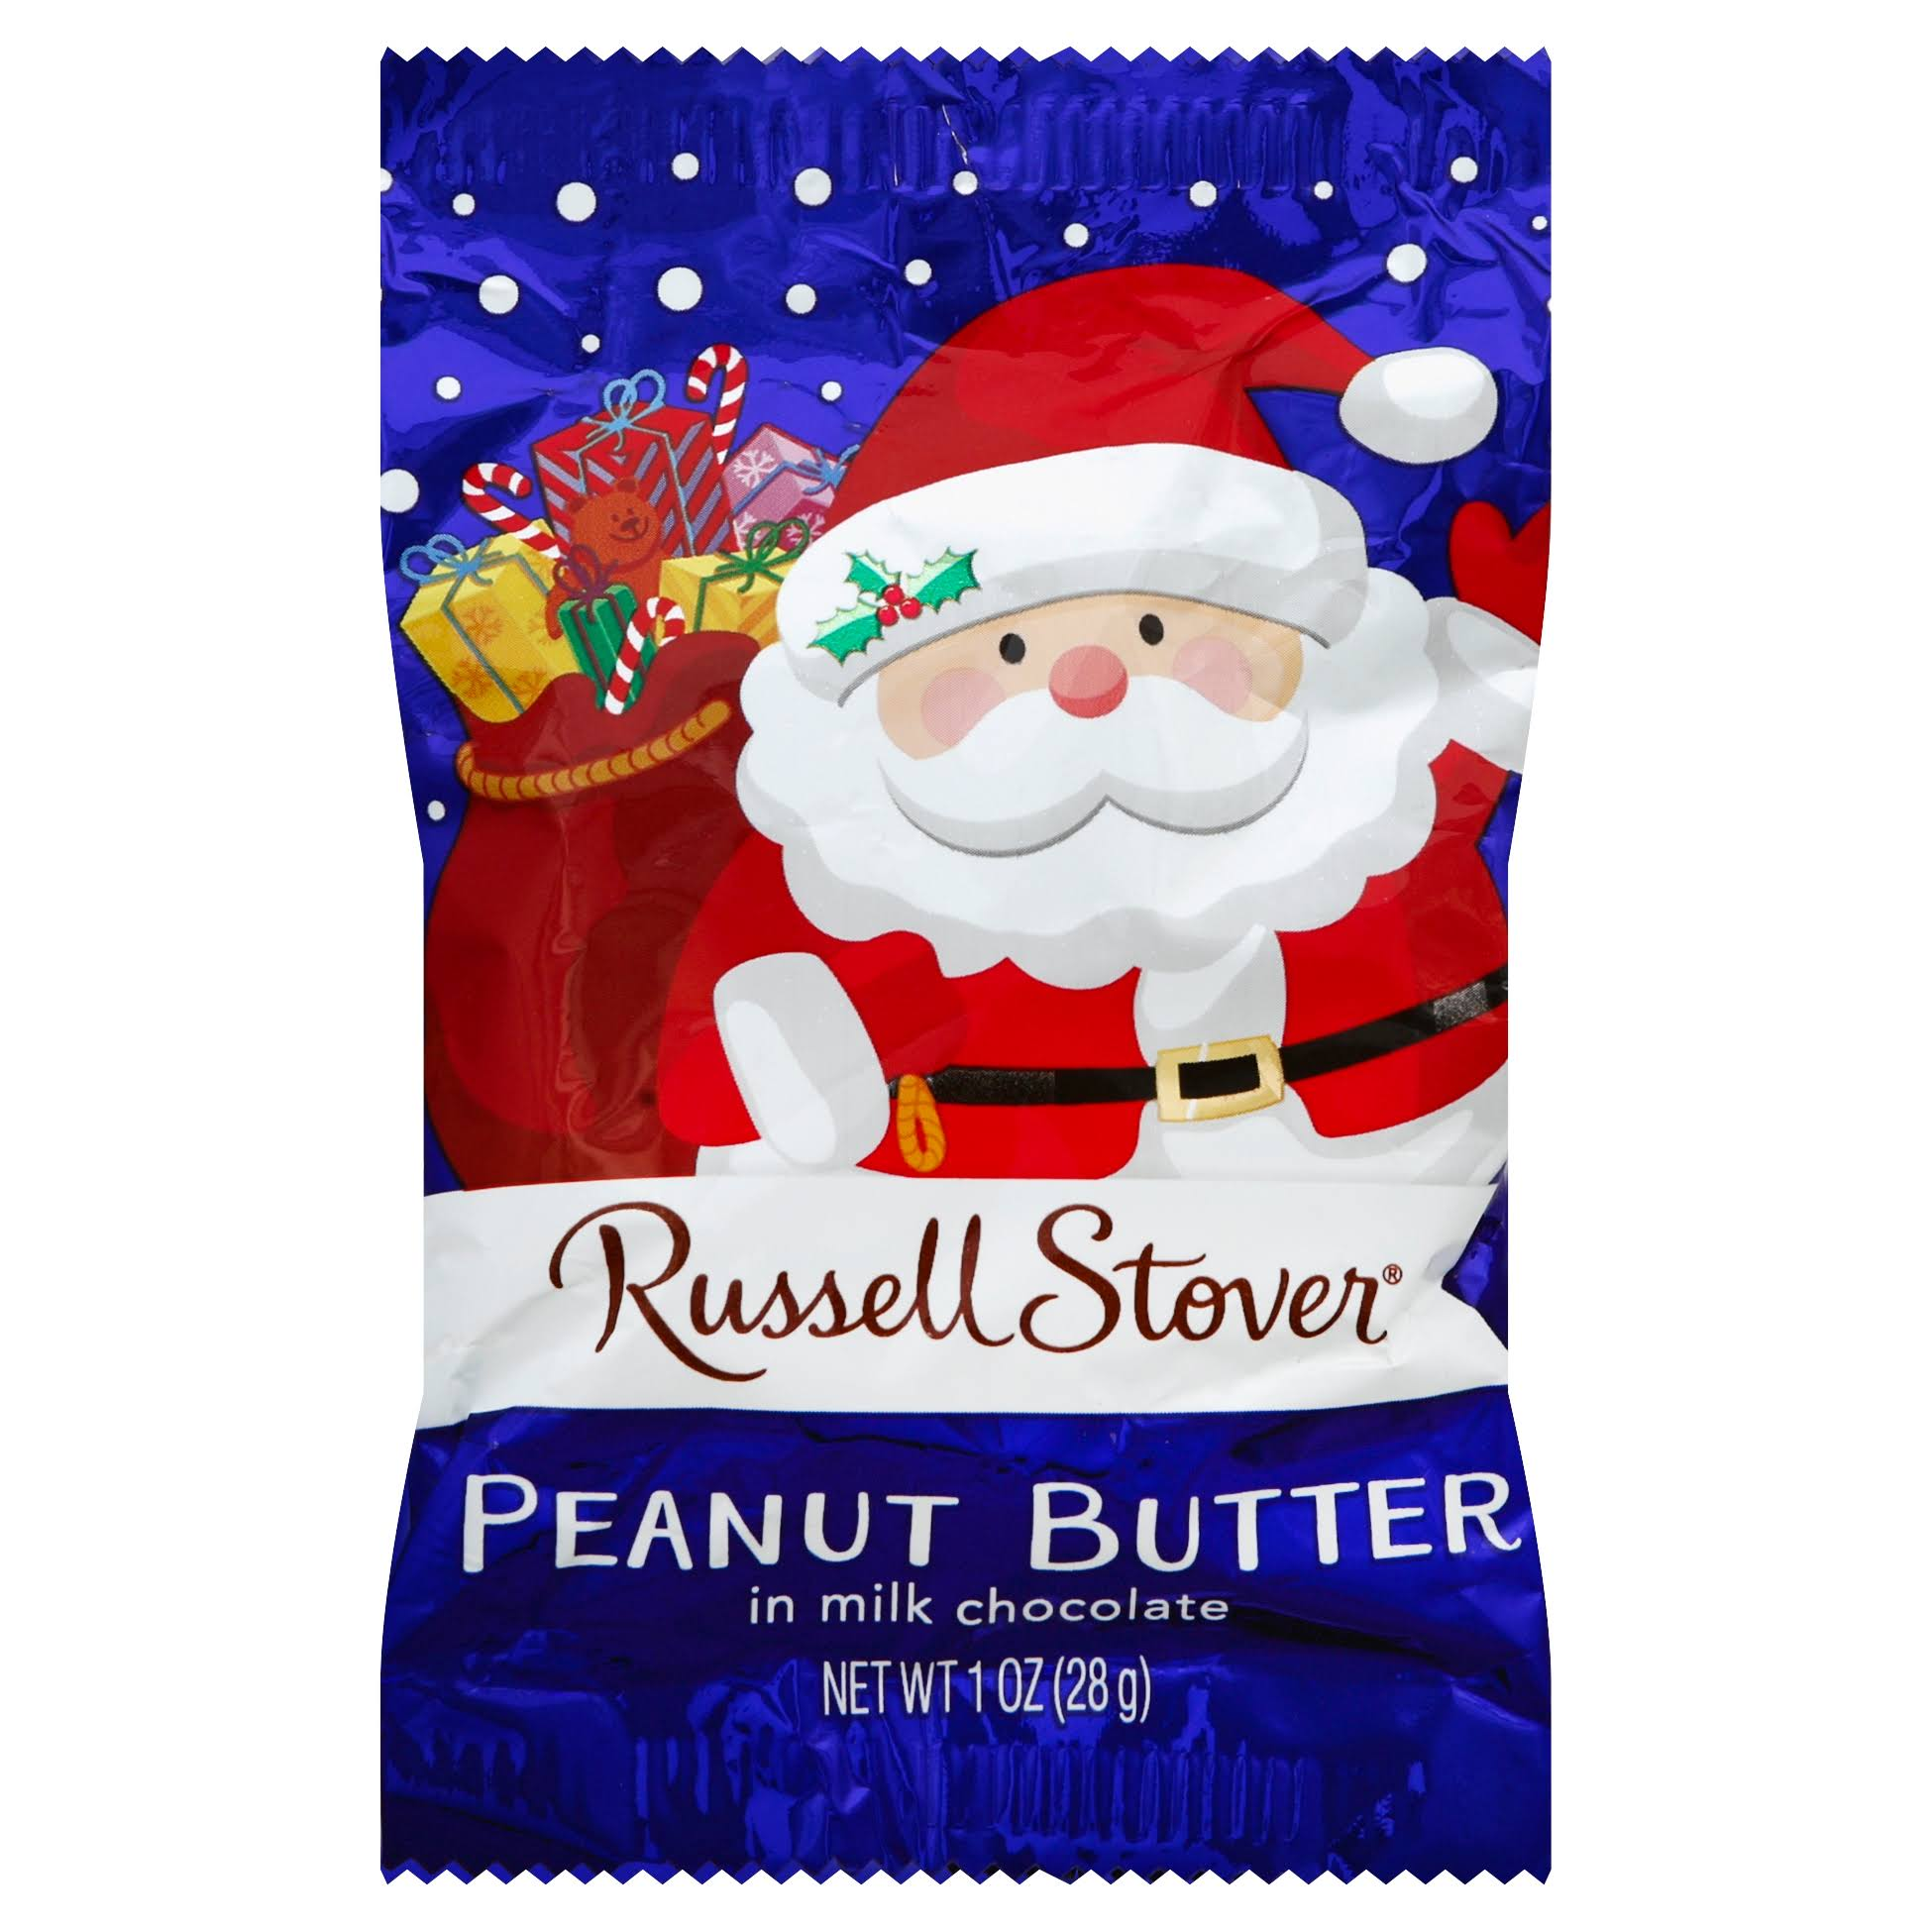 Russell Stover Peanut Butter, in Milk Chocolate - 1 oz